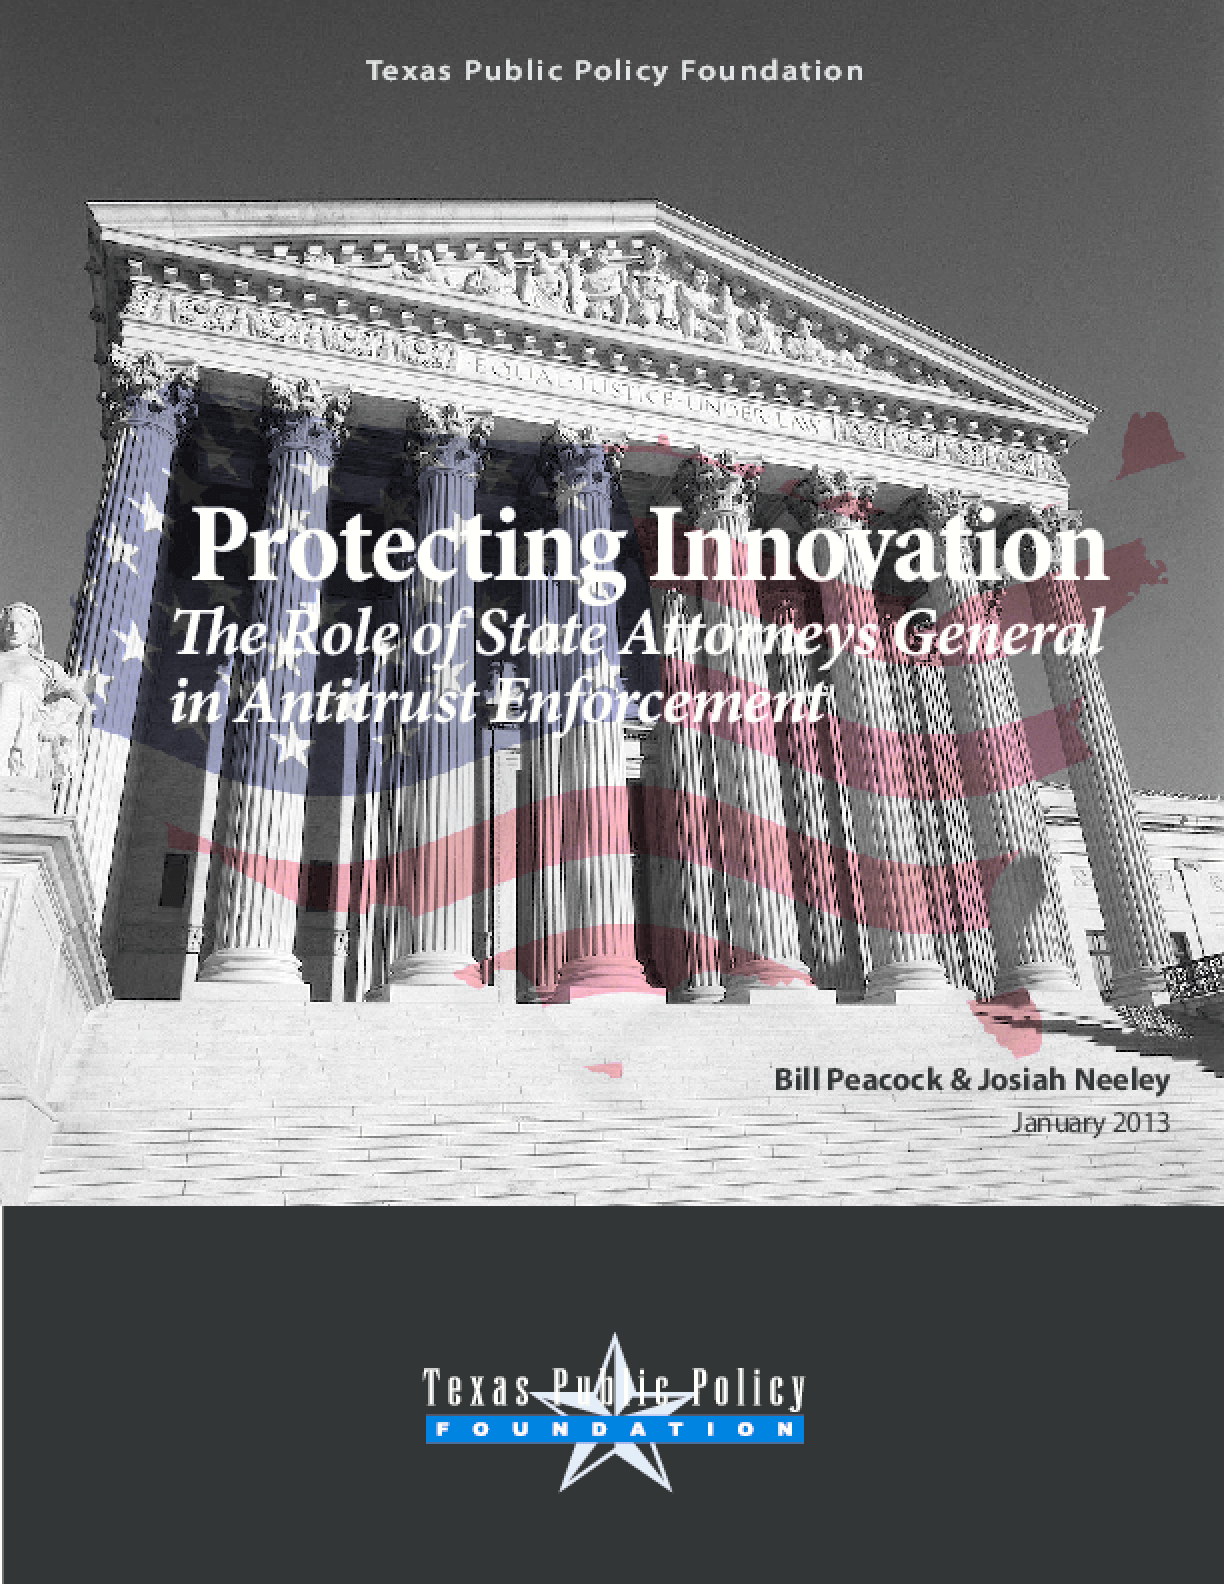 Protecting Innovation: The Role of State Attorneys General in Antitrust Enforcement